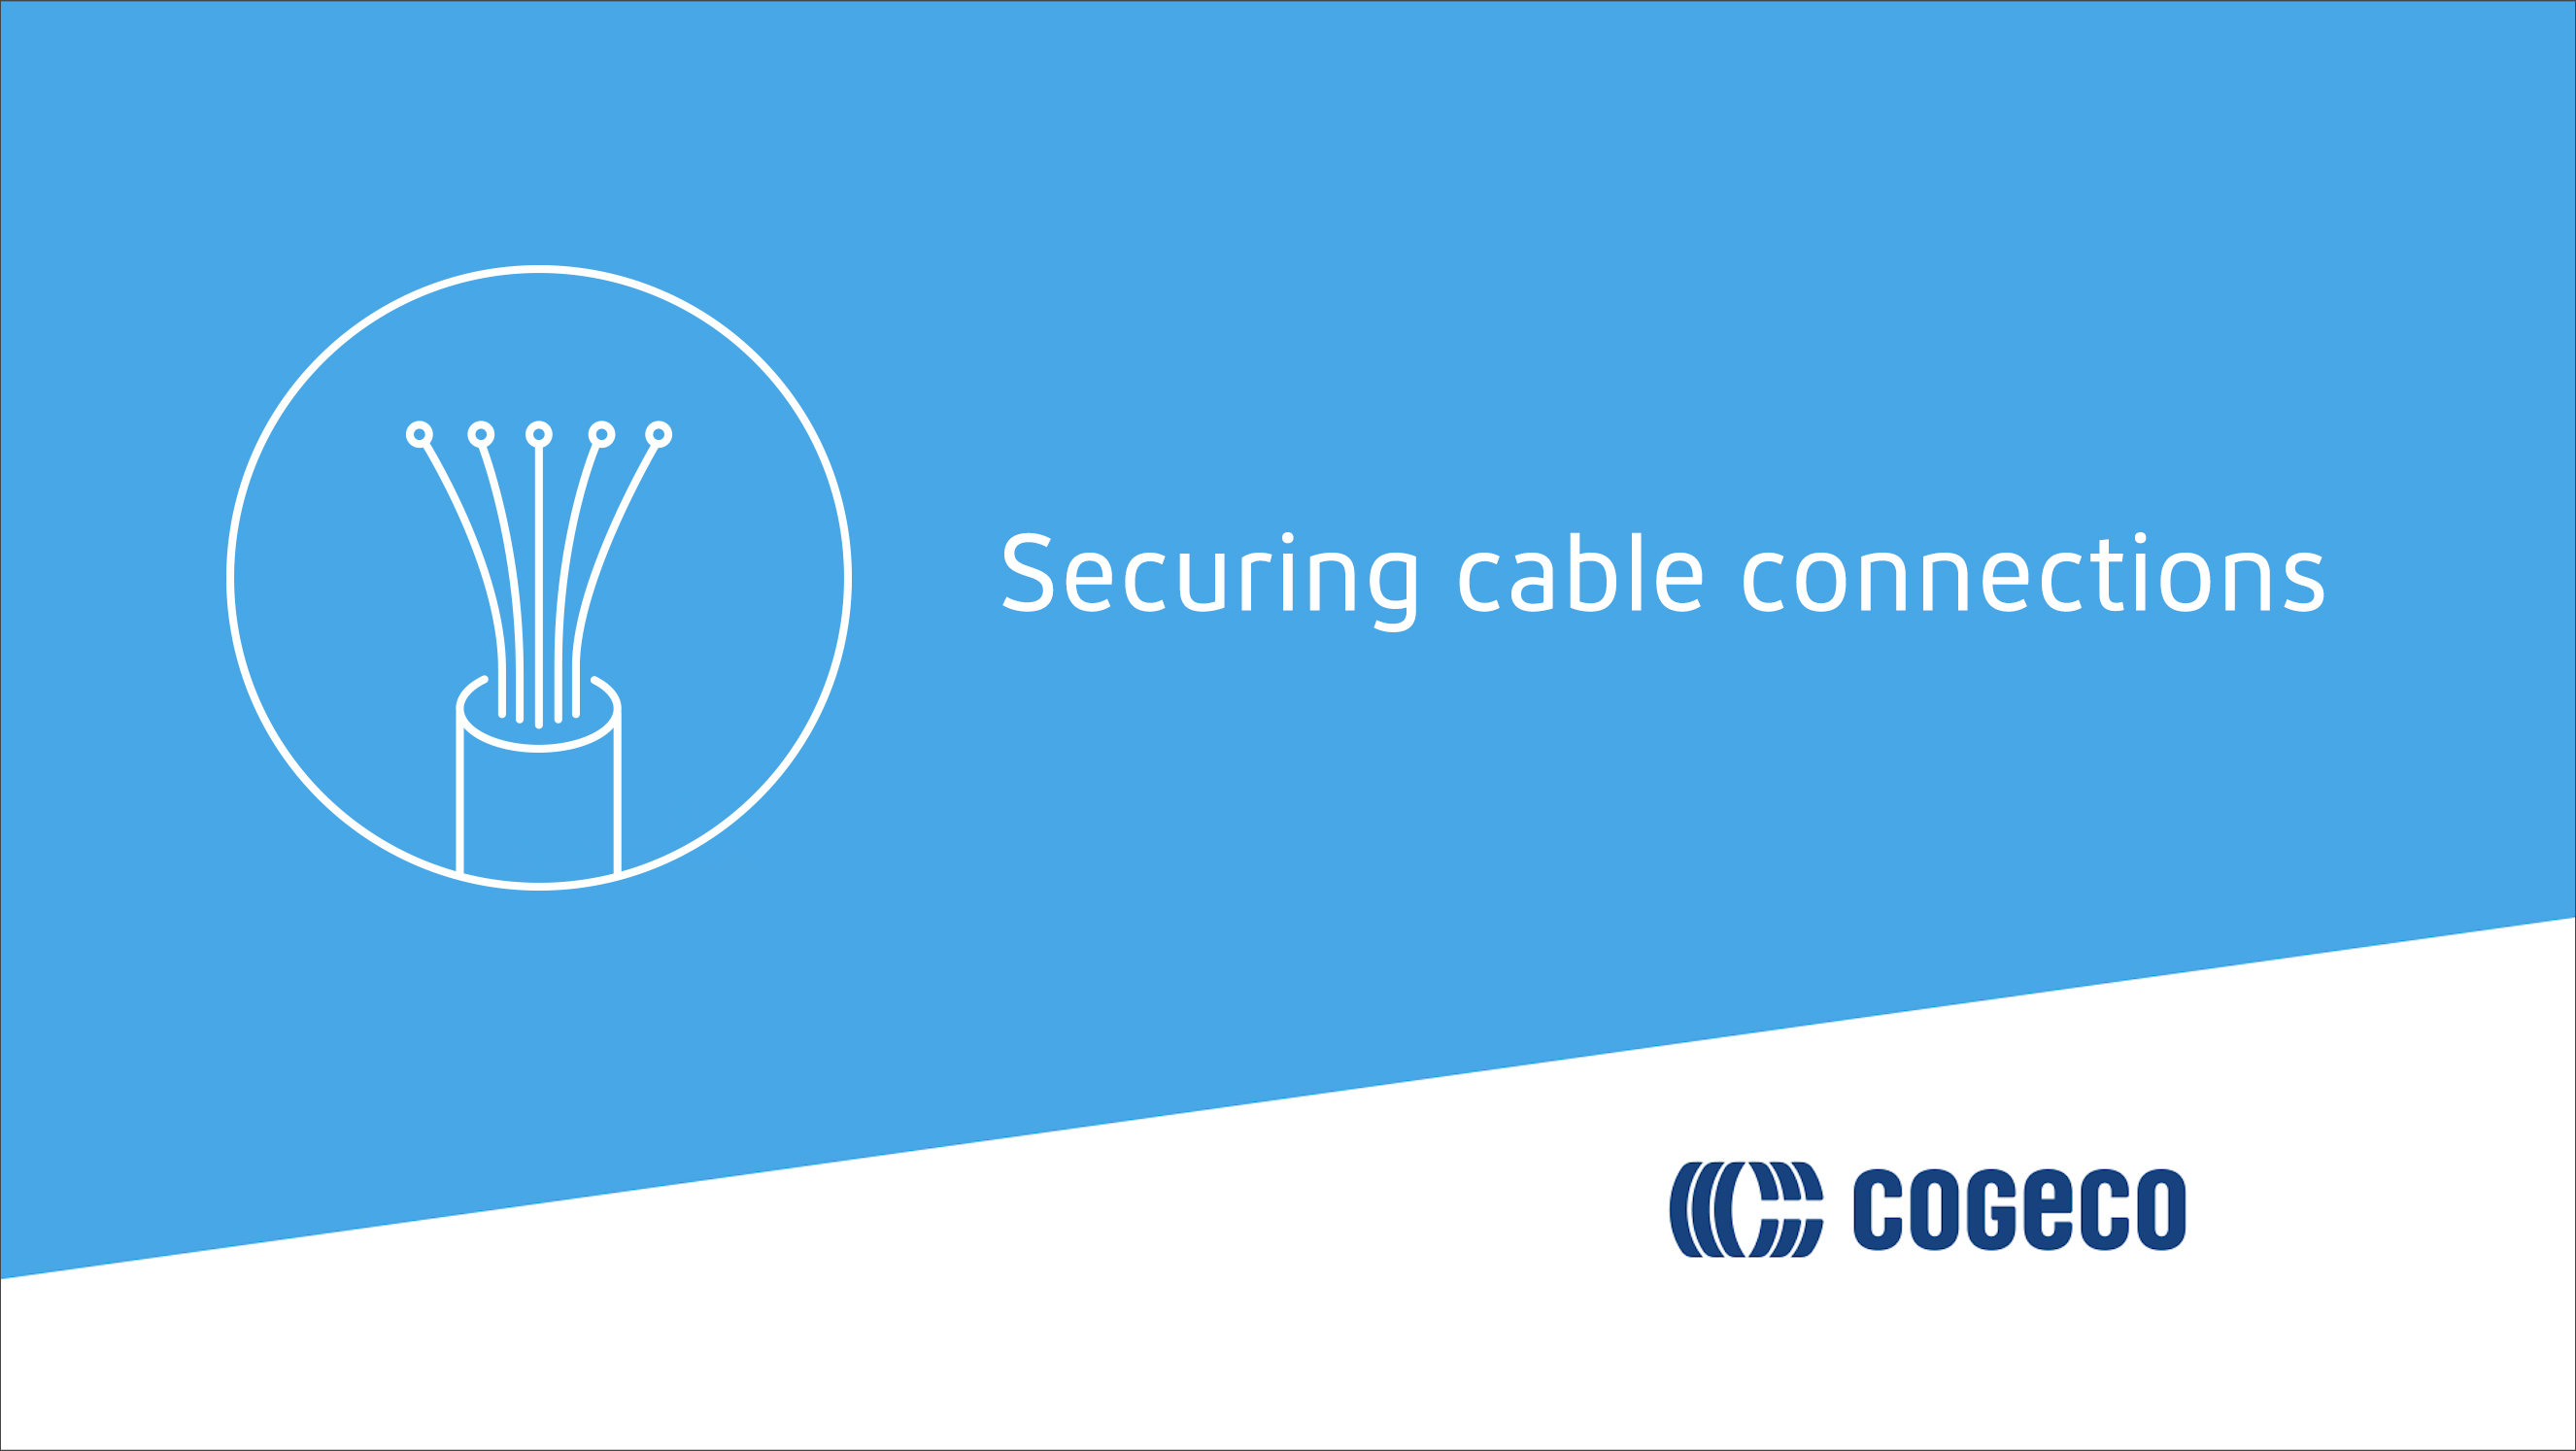 Securing cable connections